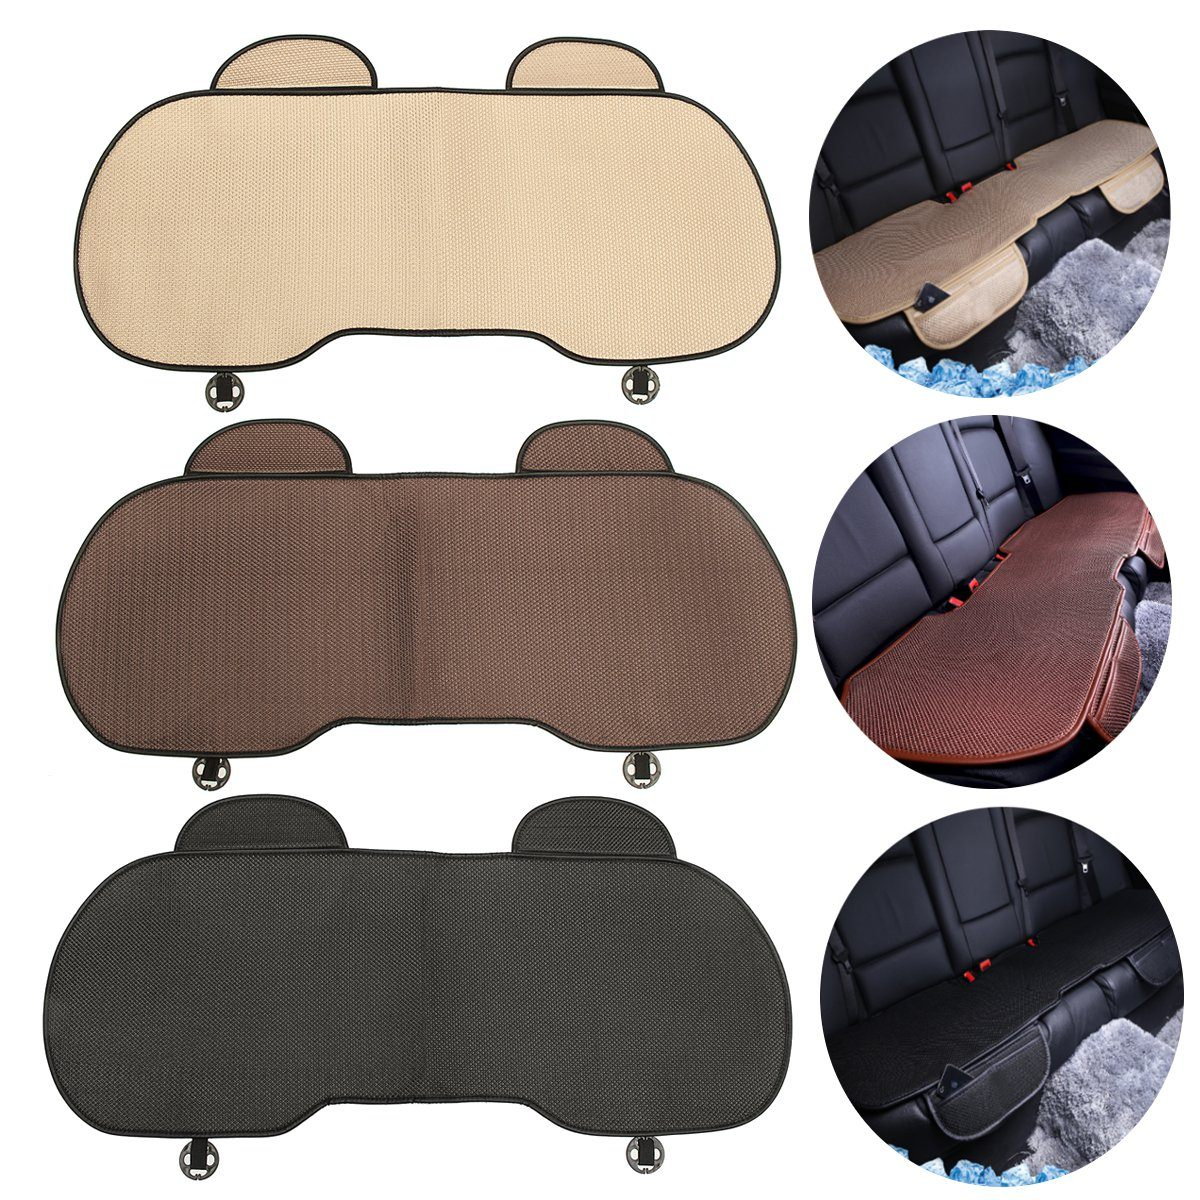 Cover-Mat Cushion Seat-Protector Car-Back-Seat Universal Black Pad Coffee Ice-Silk Beige